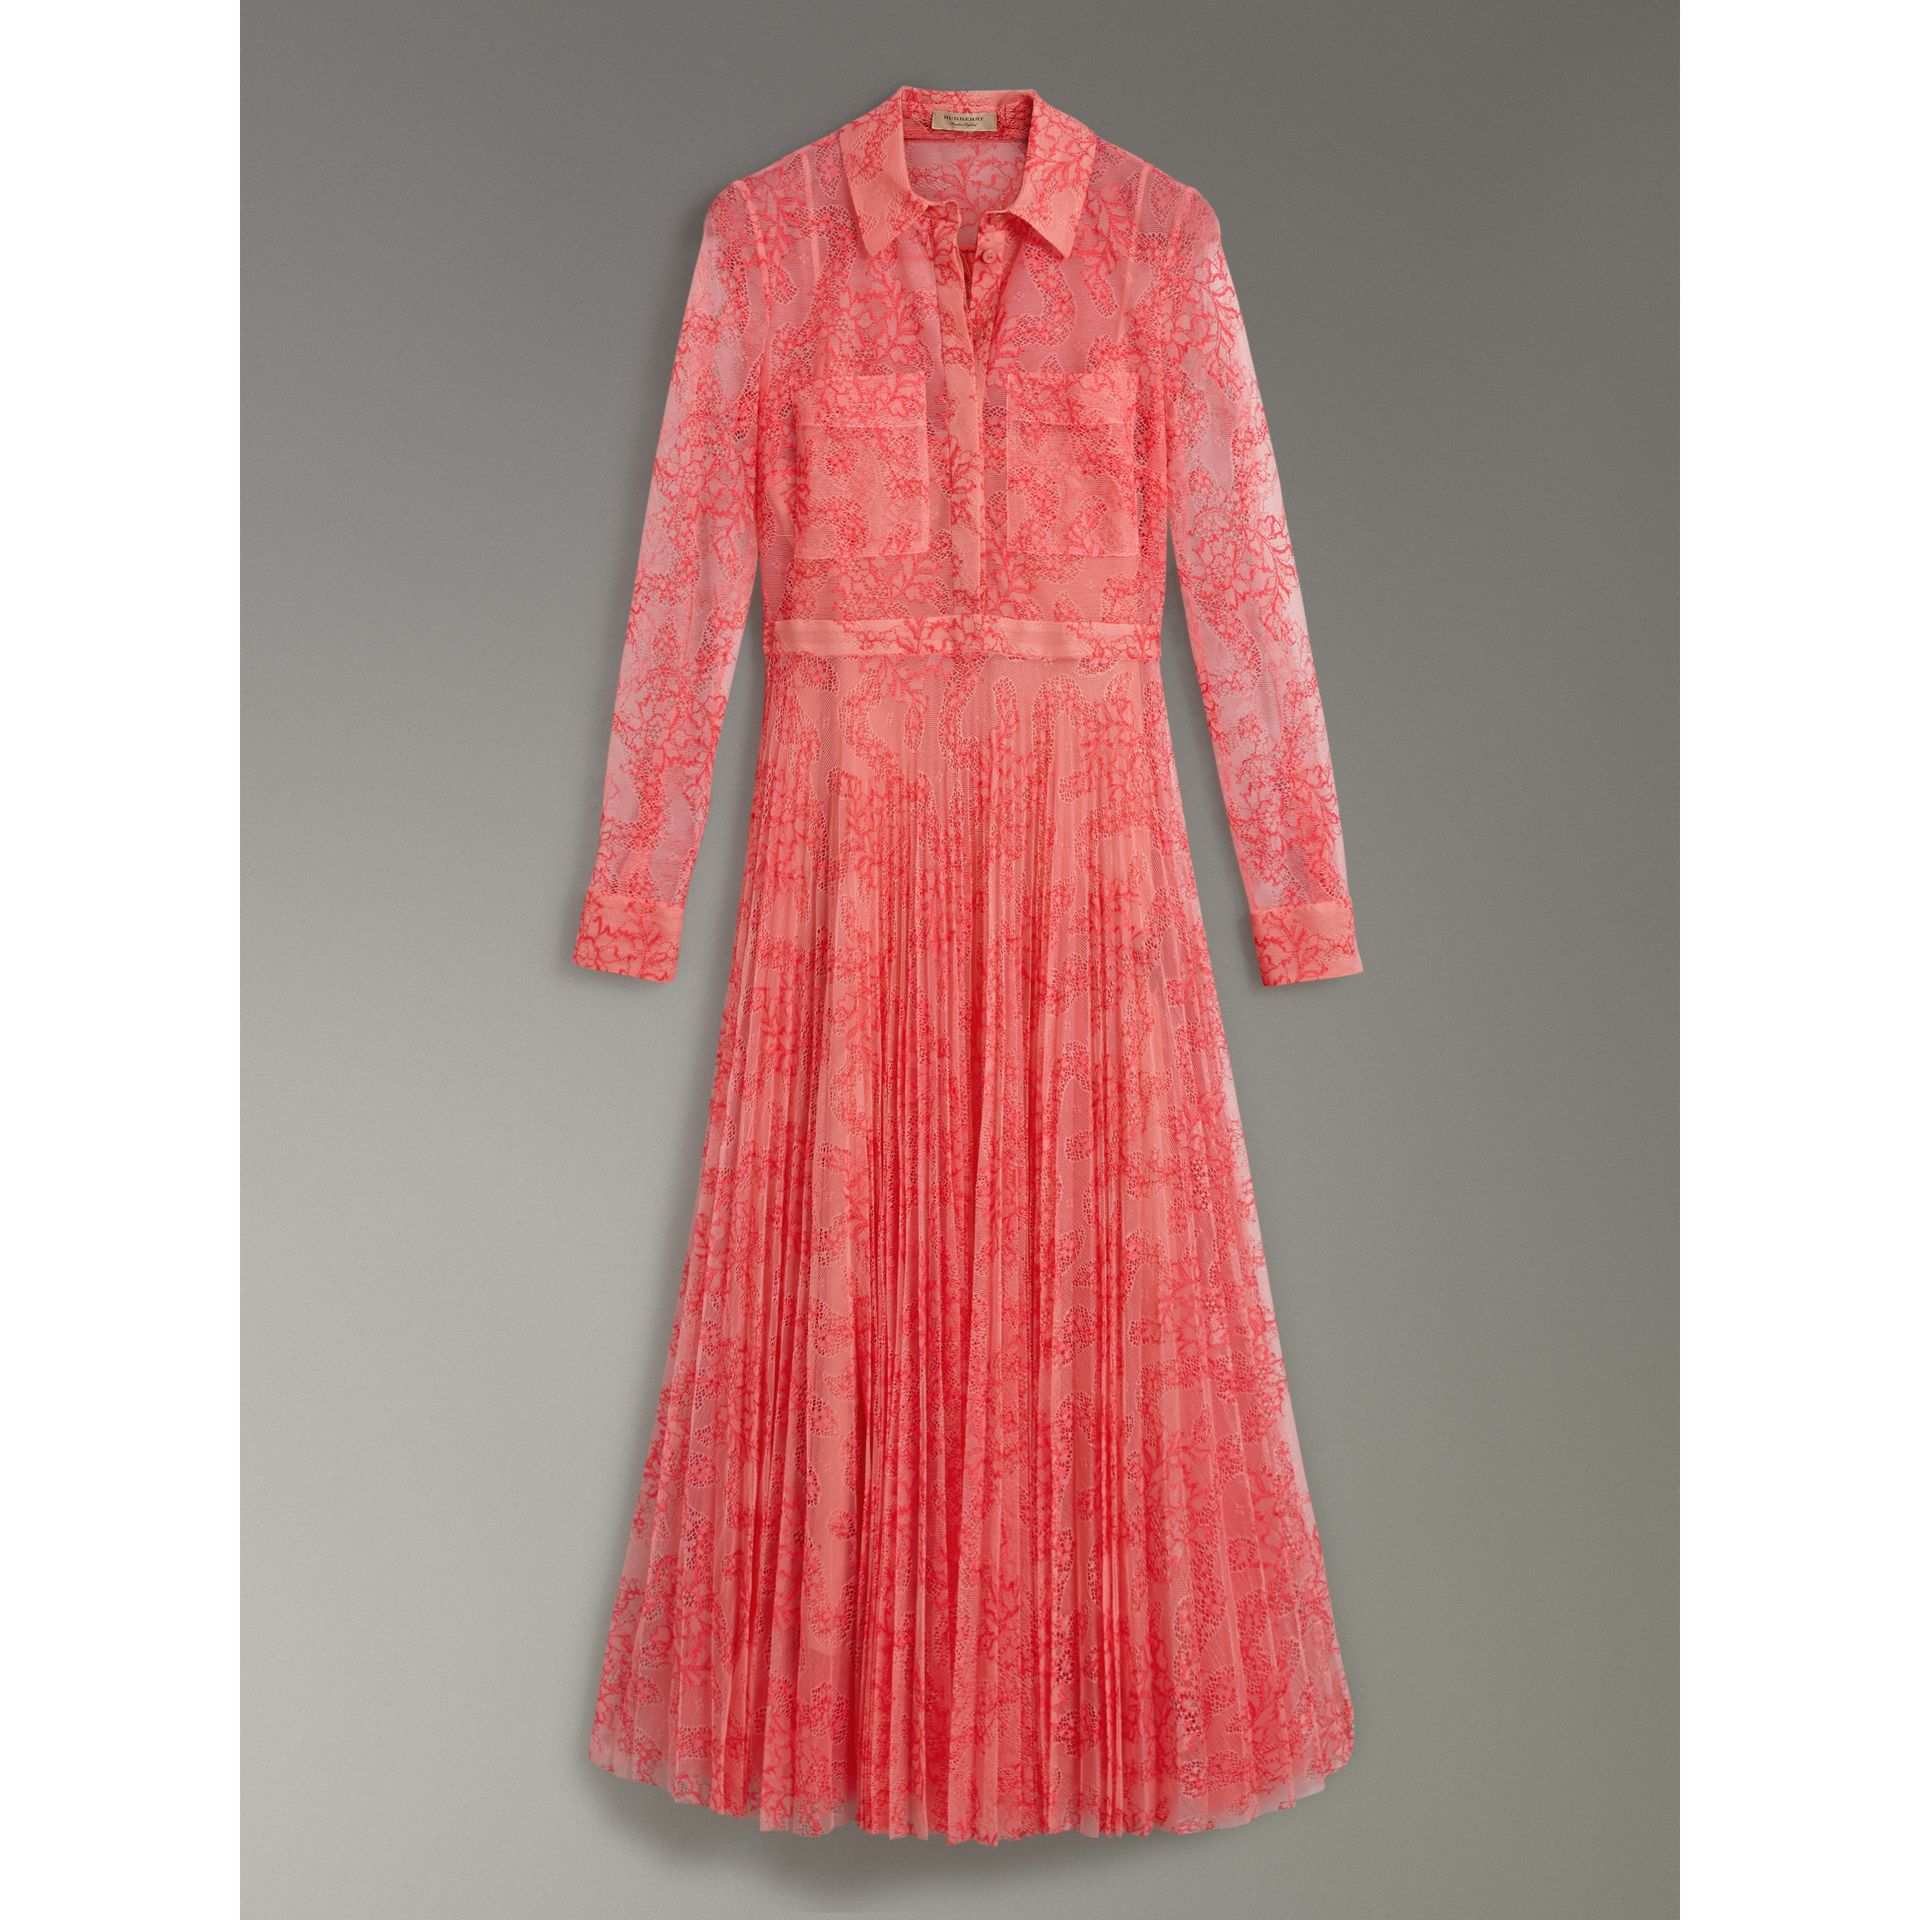 Pleated Lace Dress in Pale Apricot/coral - Women | Burberry - gallery image 3